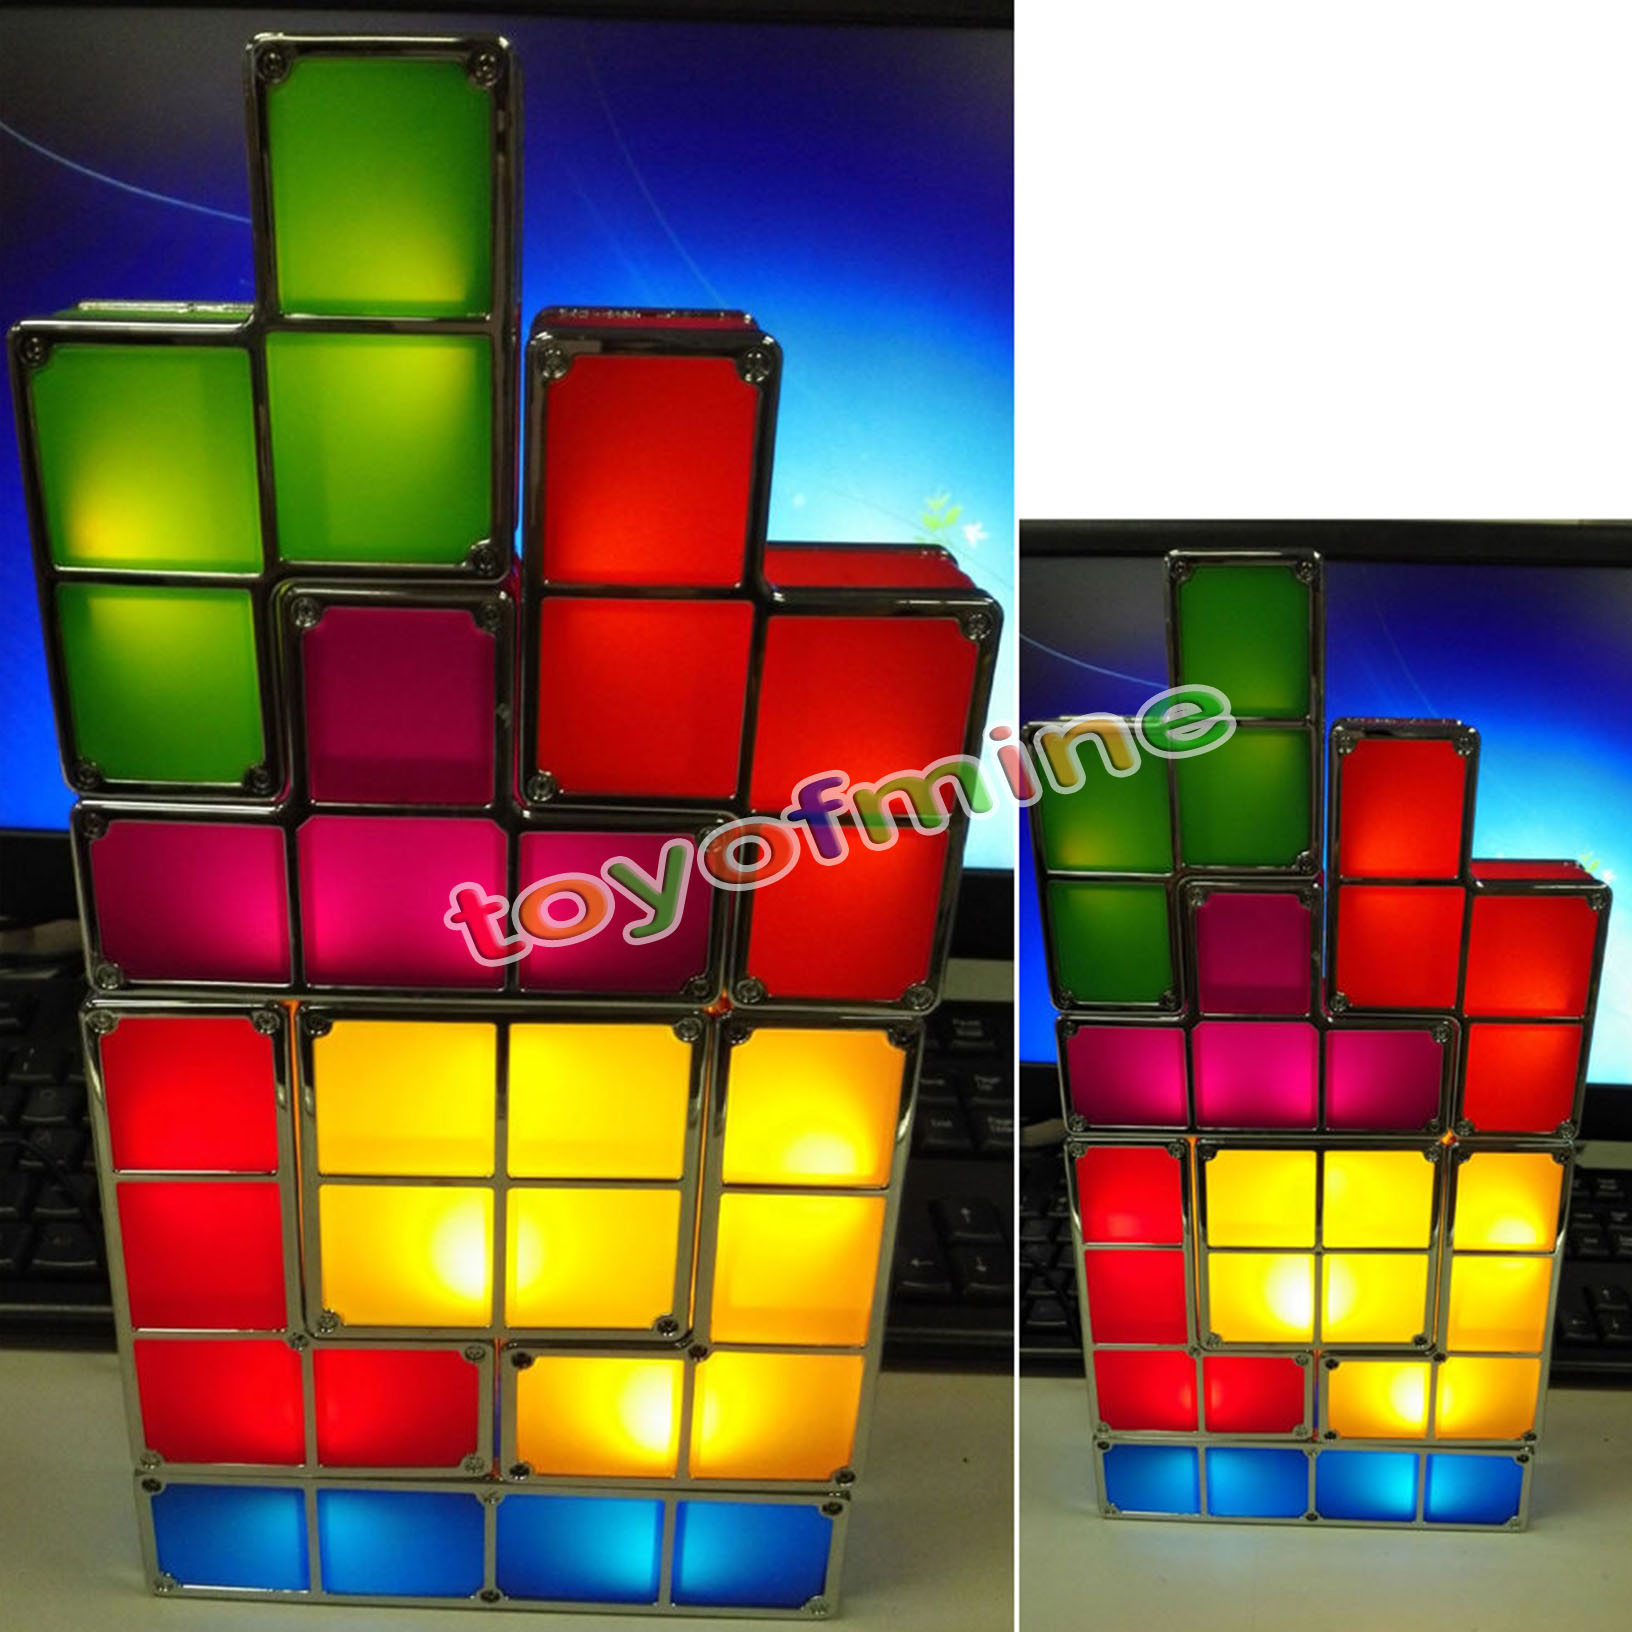 Novelty Lamp Crossword : Novelty DIY Retro Game Style Puzzle Desk Lamp LED Tetris Constructible Light eBay